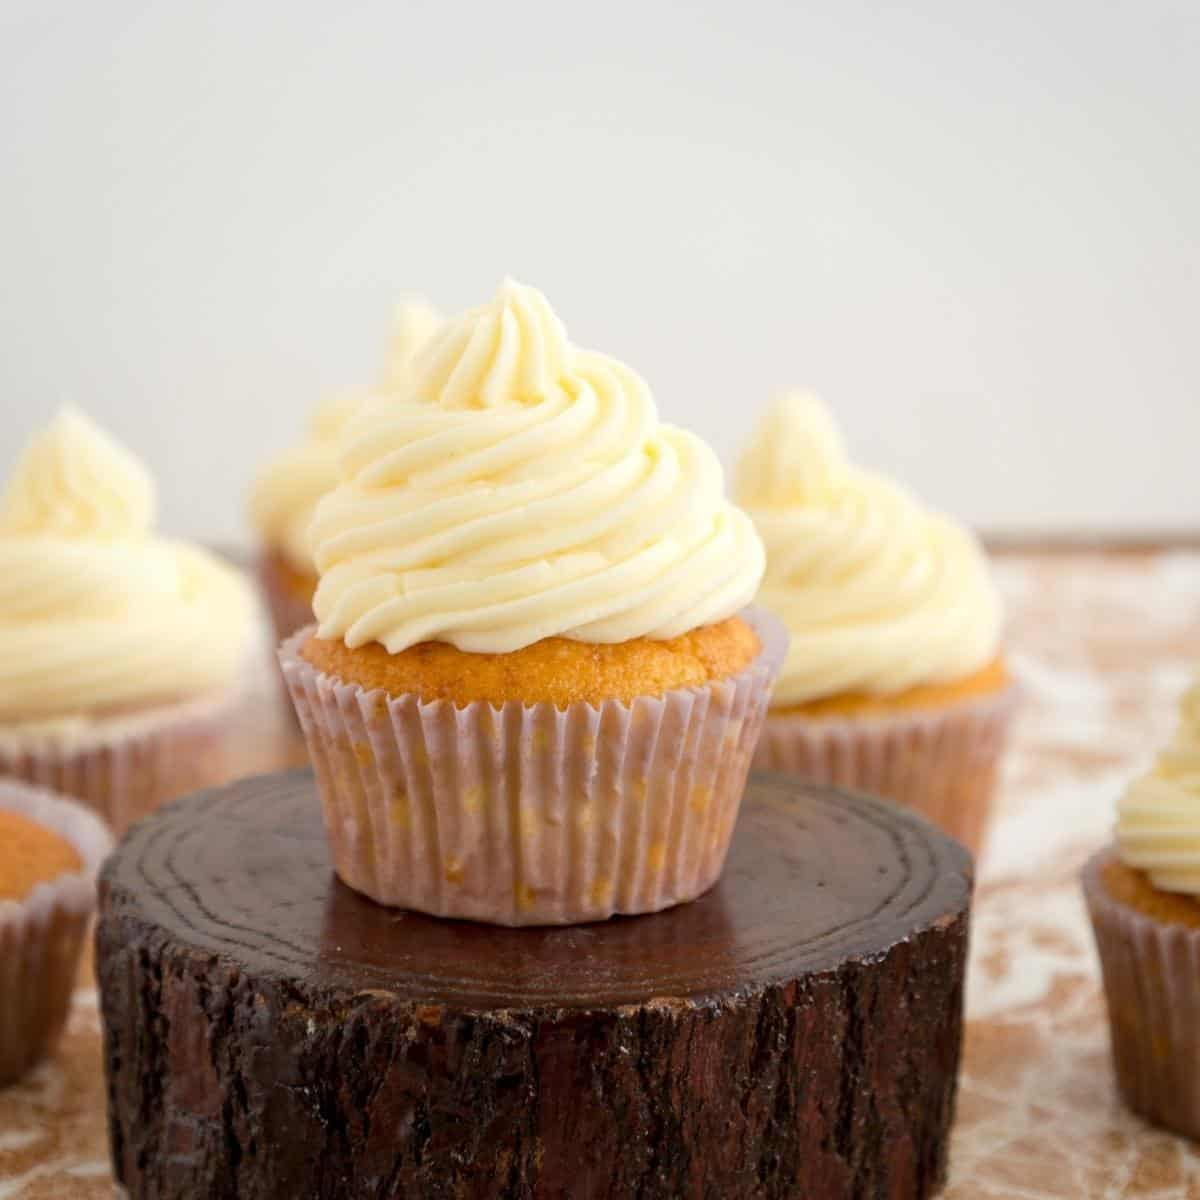 A cupcake frosted with buttercream made French method.